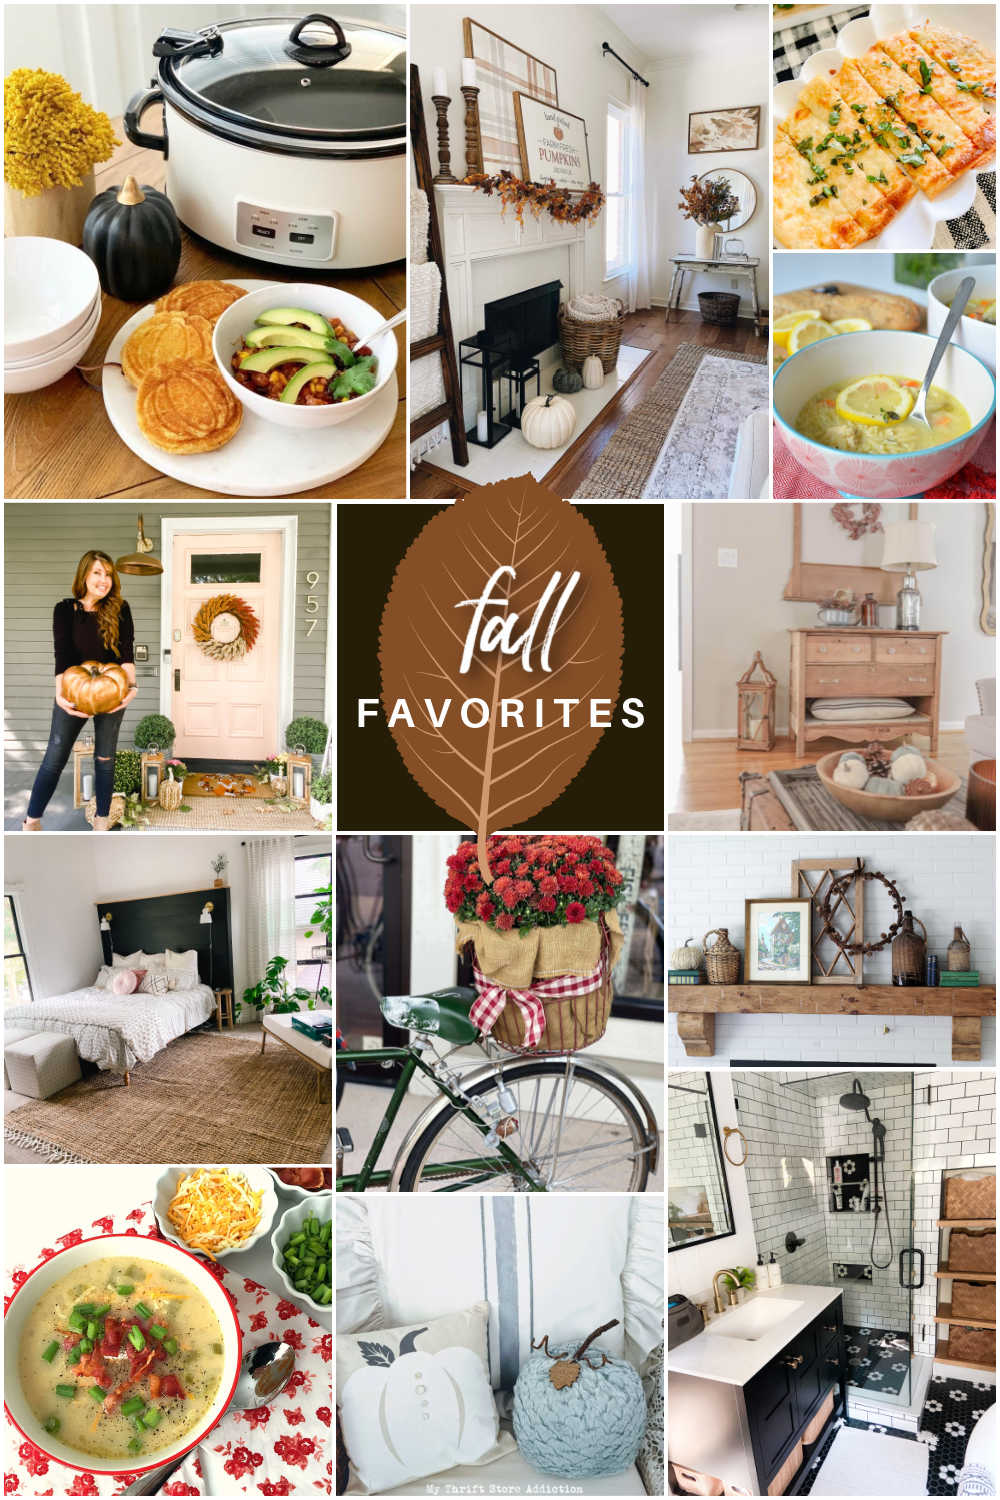 Welcome Home Saturday - Fall Favorites! Fall decorating, mantel ideas, recipes and fall favorite things!